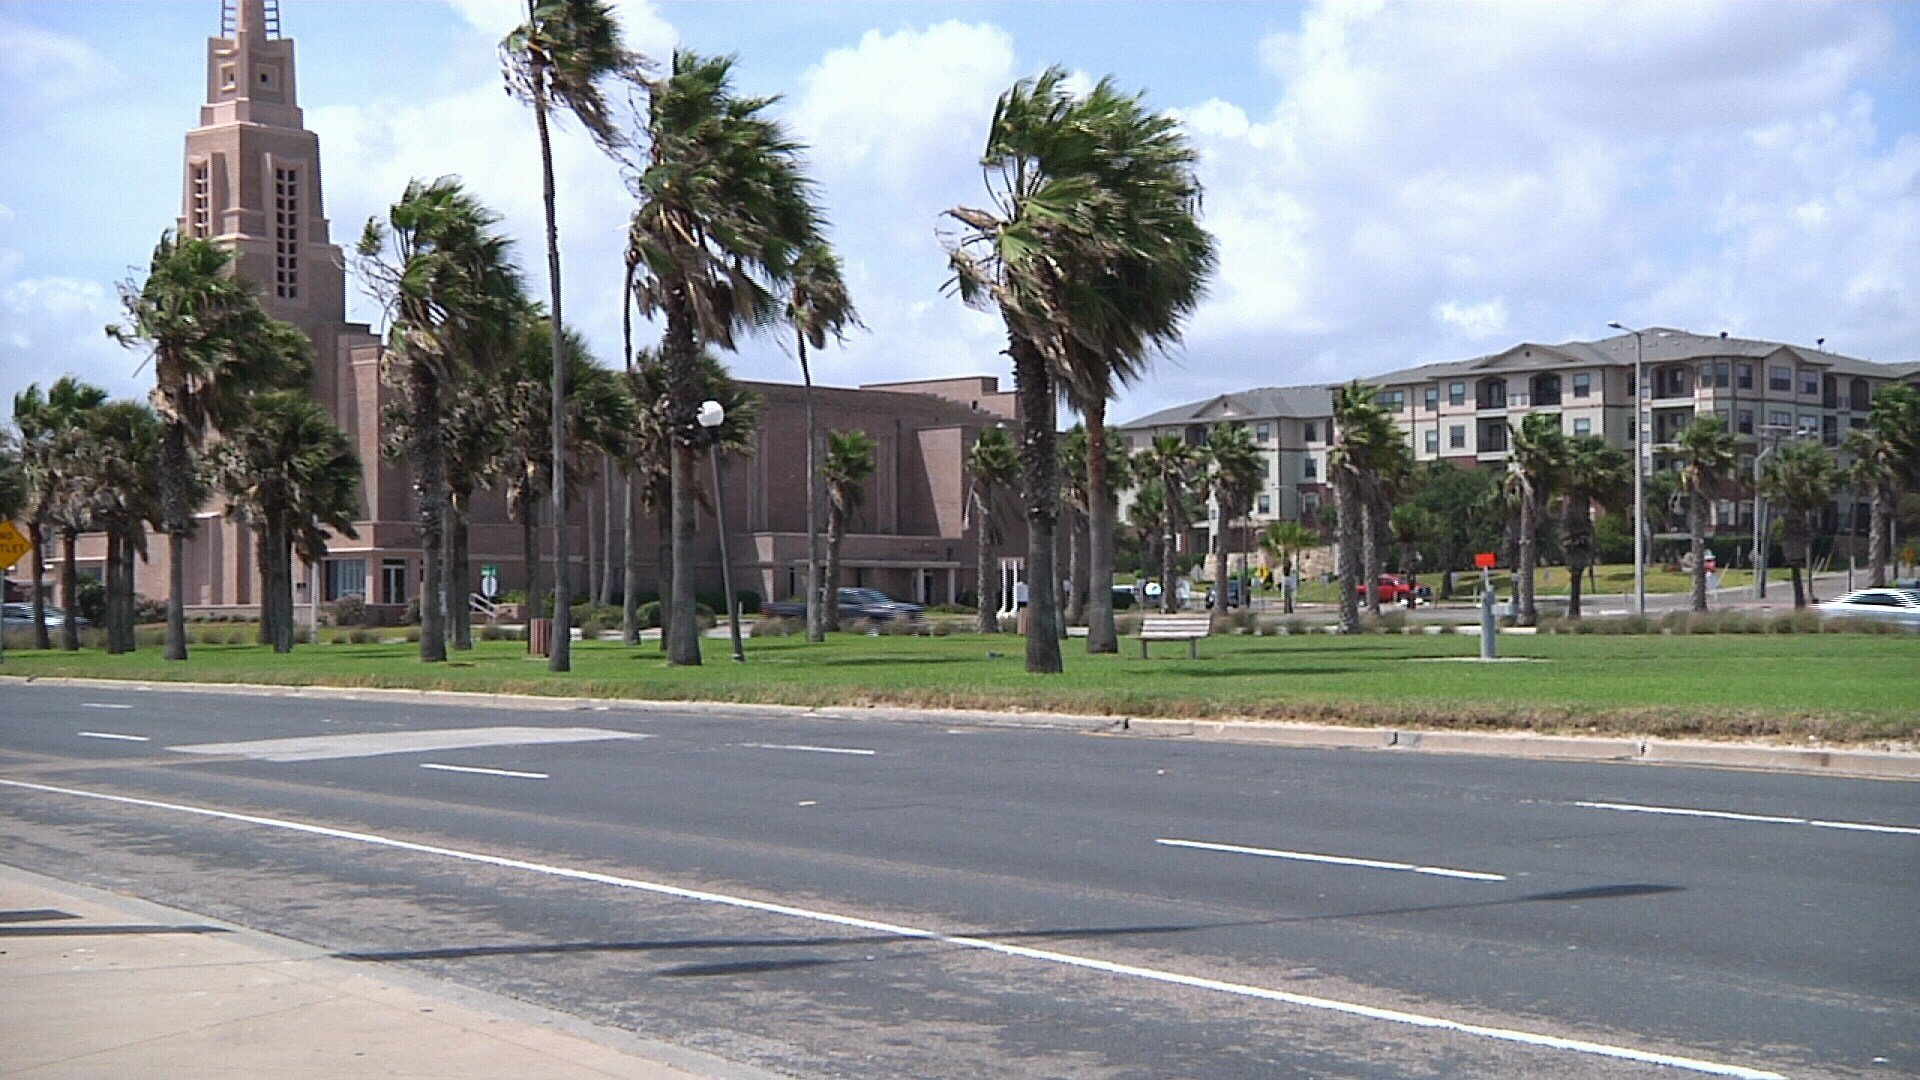 Bayshore Park will include a dog park along the Corpus Christi bayfront. (KRIS)